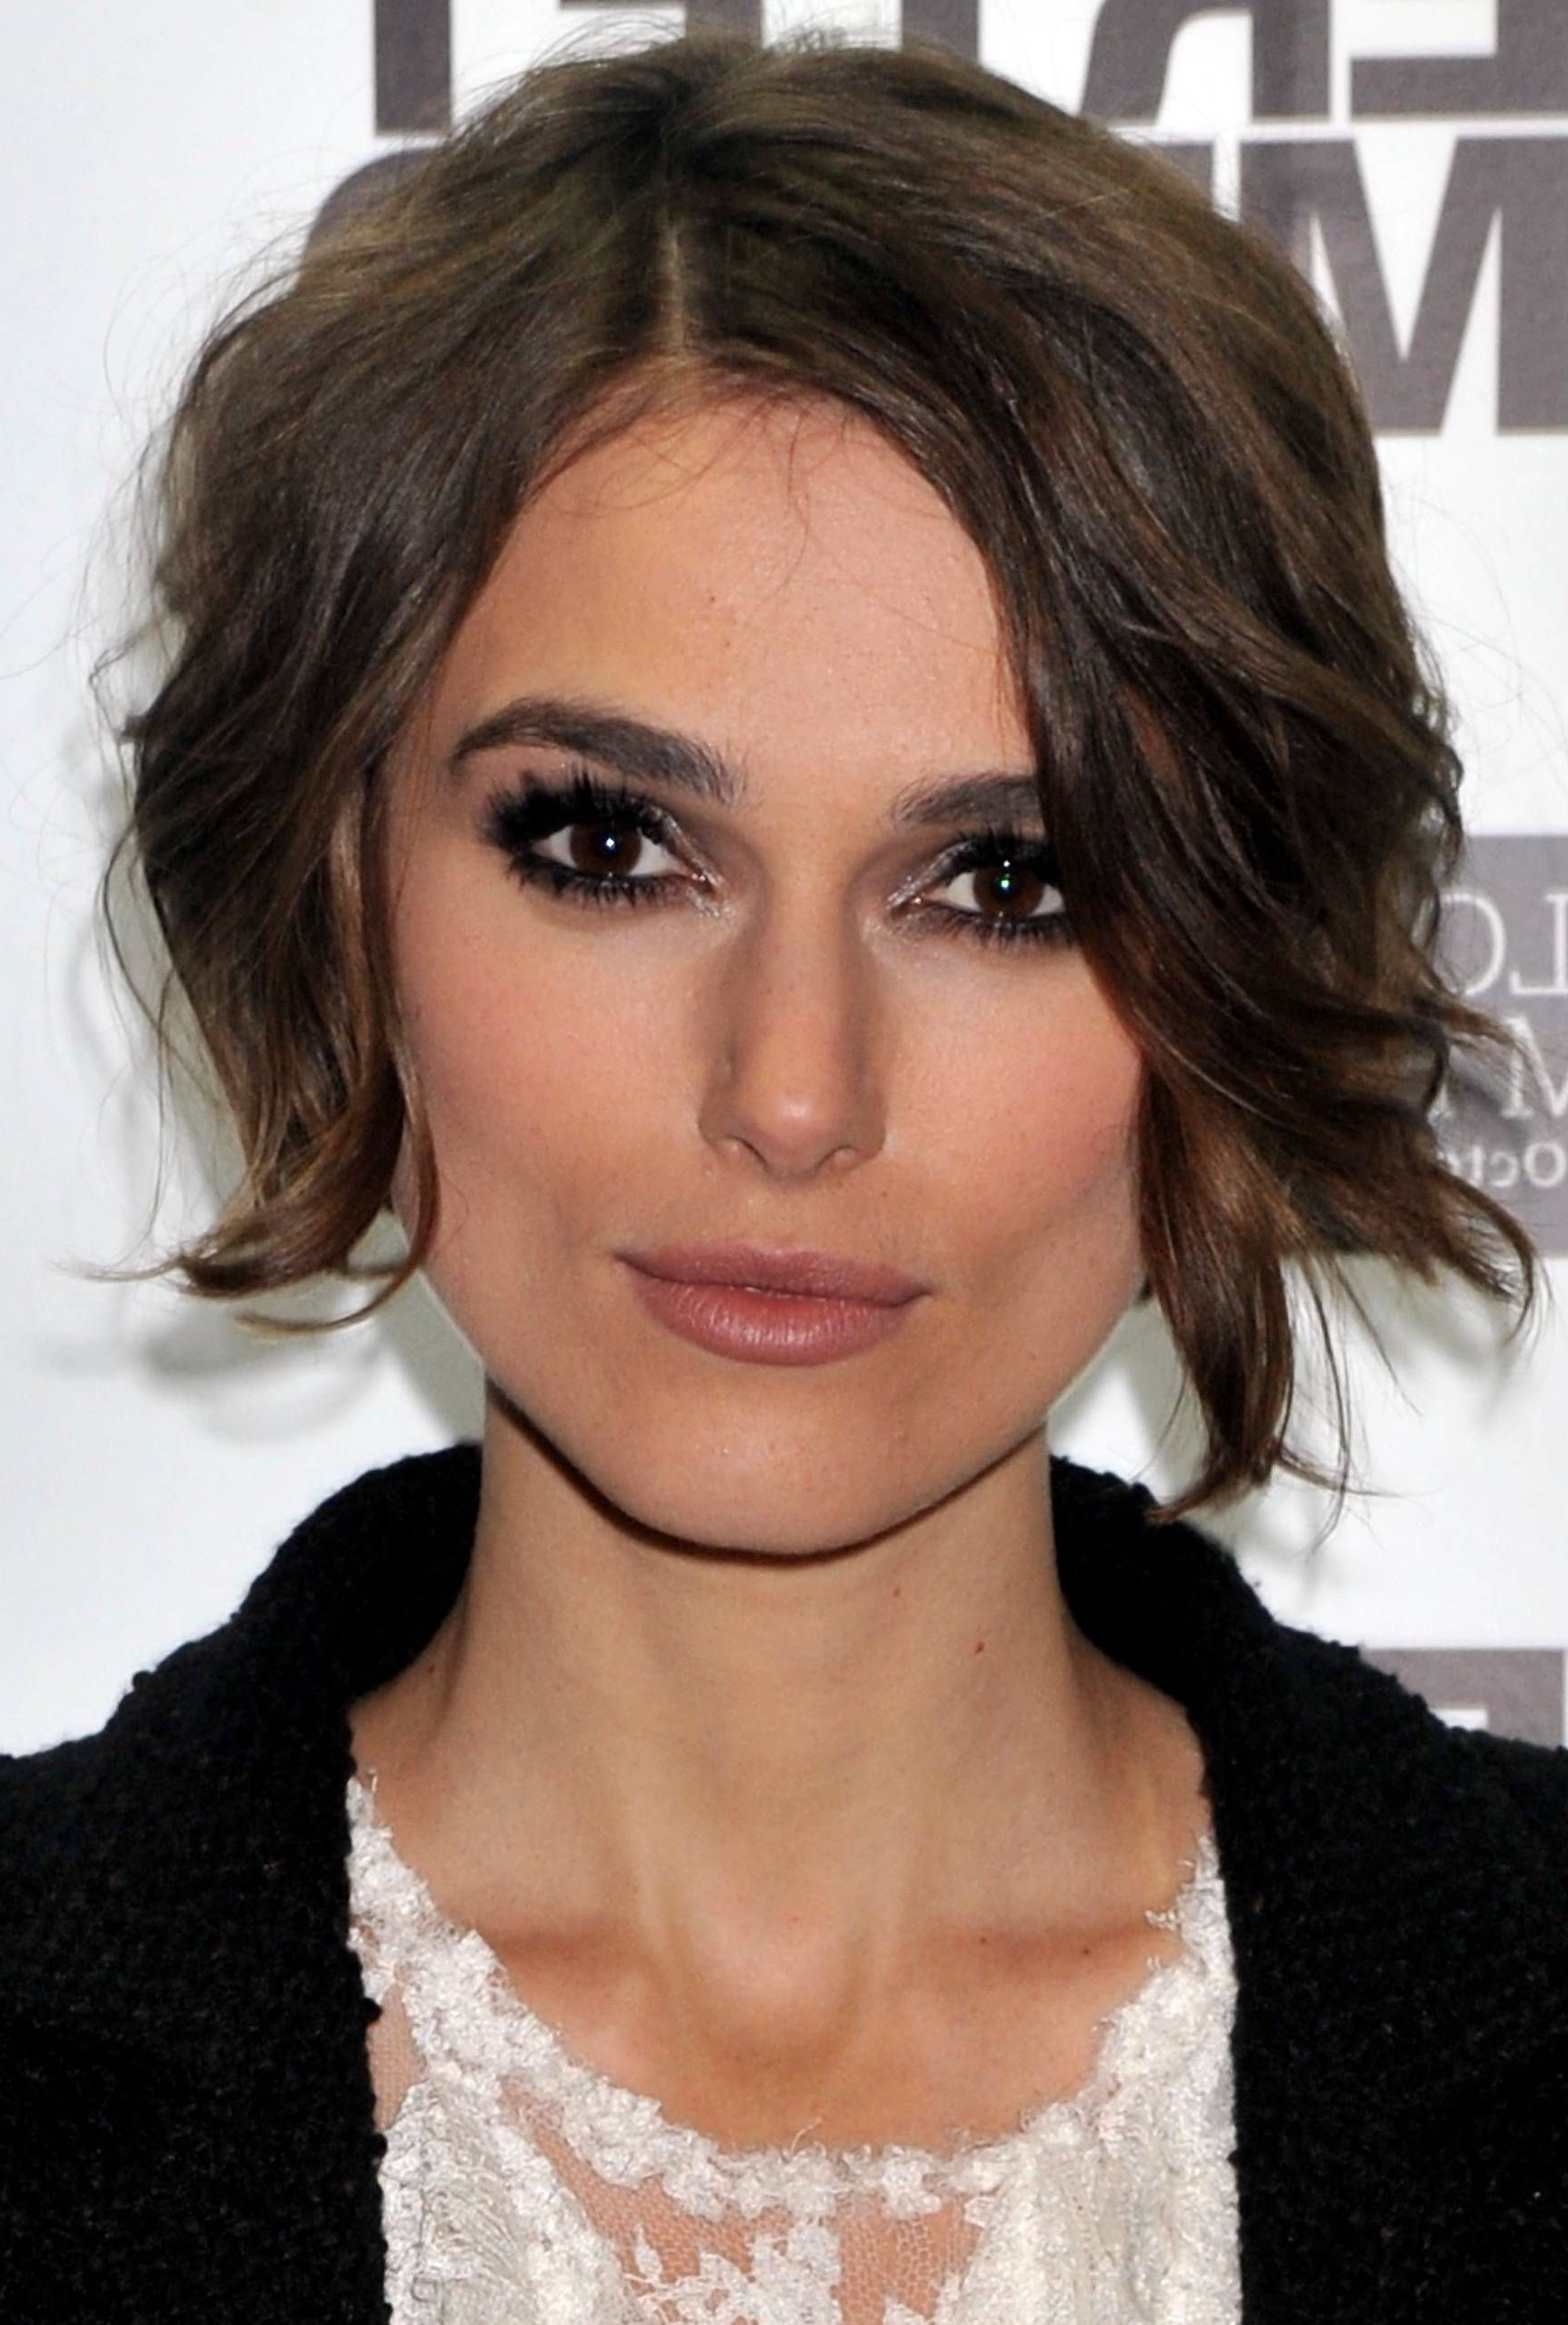 22 Inspiring Short Haircuts For Every Face Shape   Hairific For Short Haircuts For A Square Face Shape (View 8 of 25)